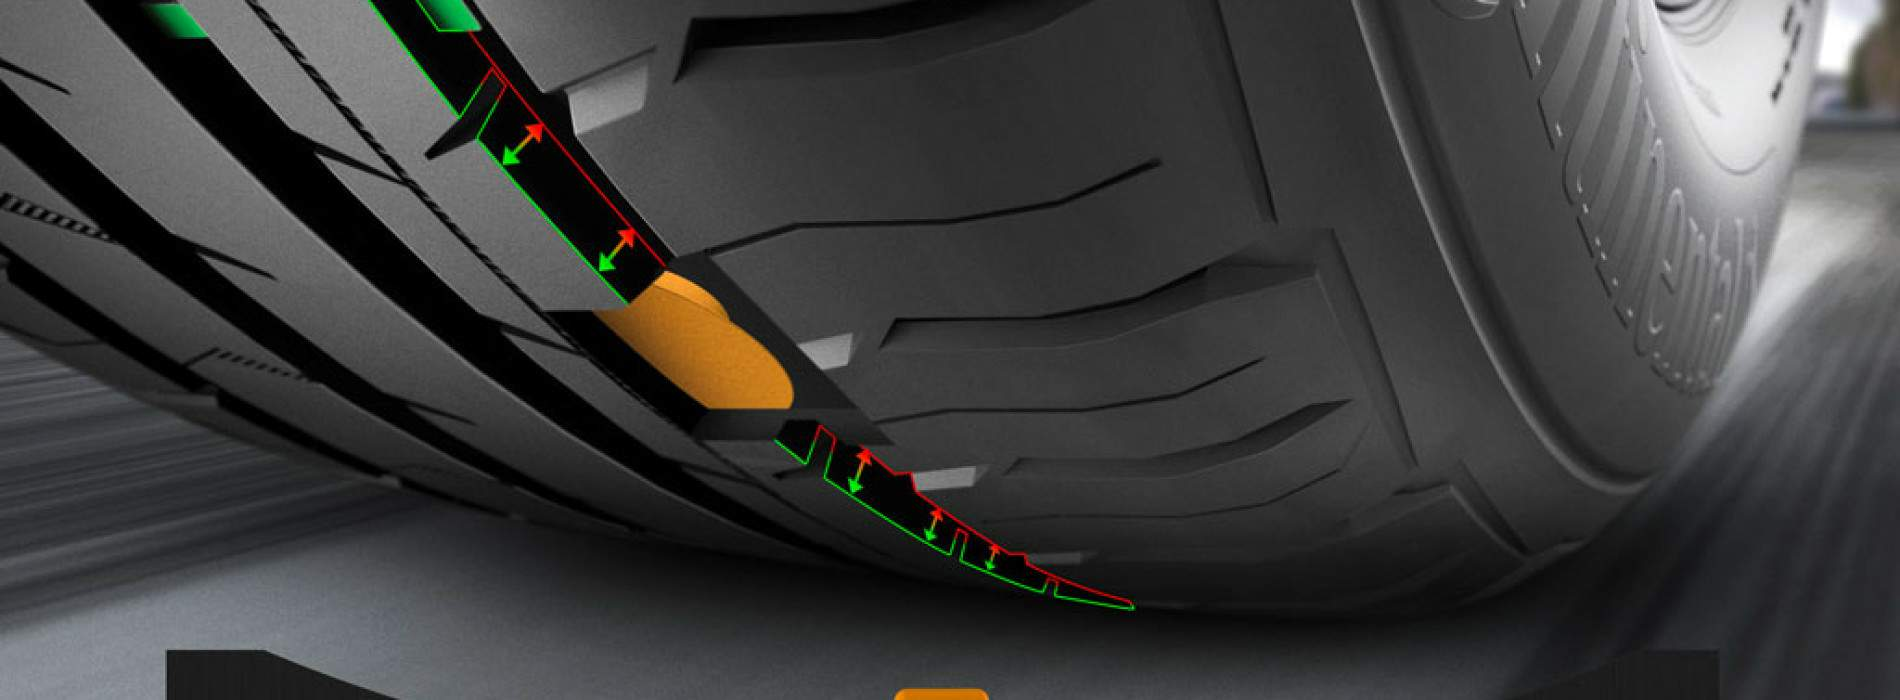 Continental In-Tire: Neumáticos inteligentes